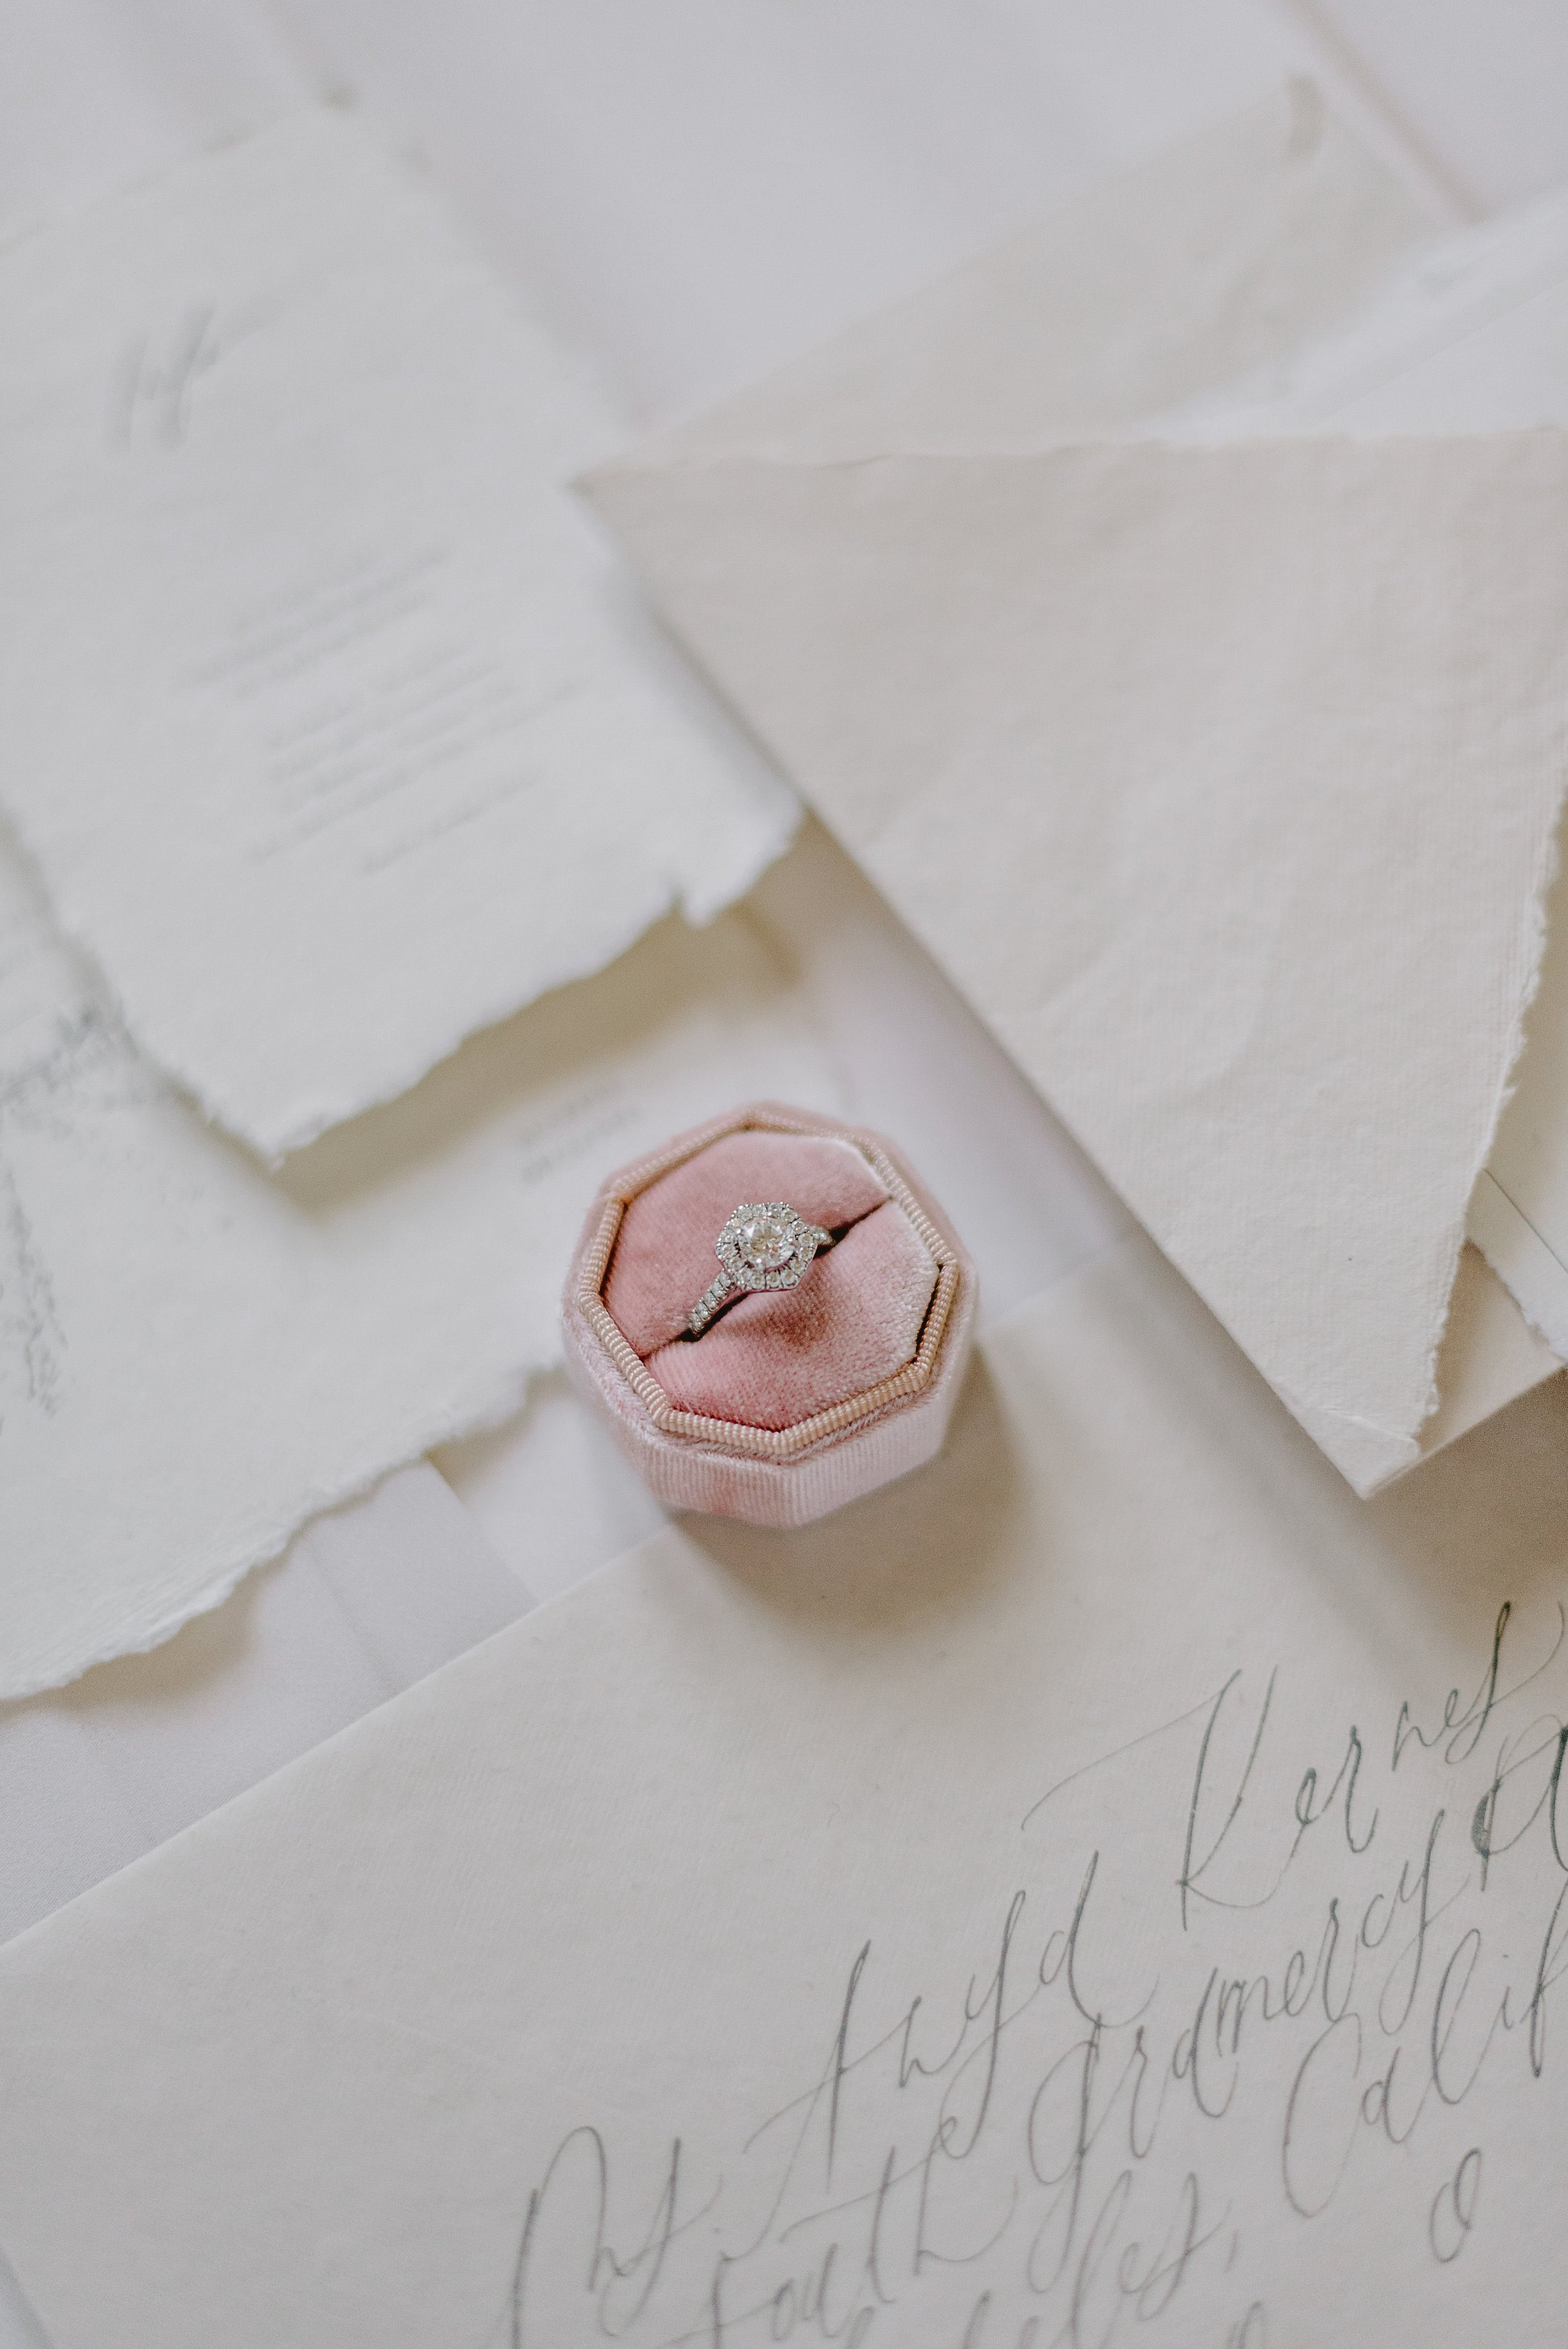 Wedding invitation suite details and wedding ring in a pink velvet box